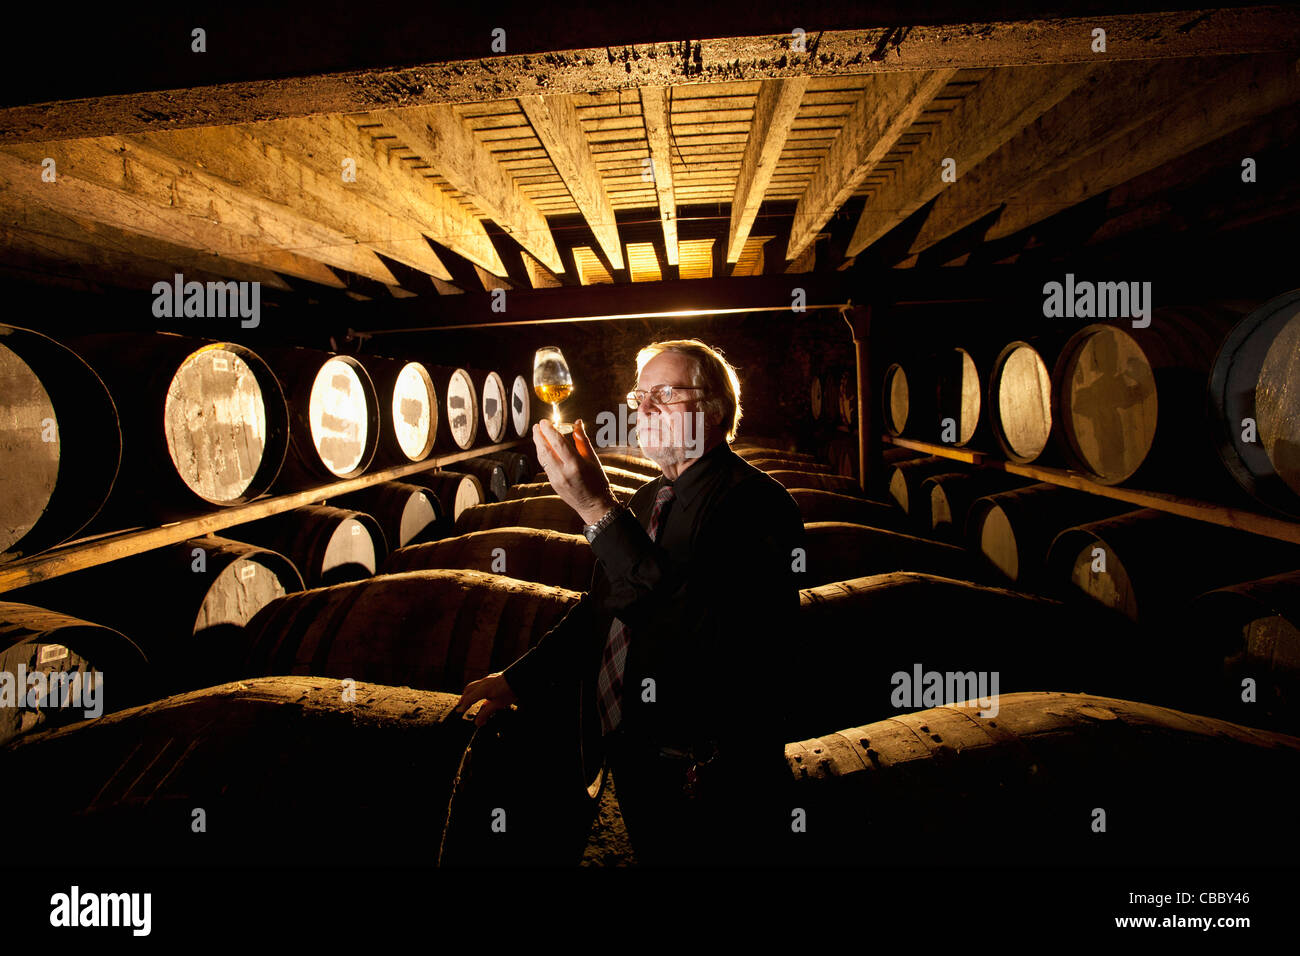 Worker testing whisky in distillery - Stock Image